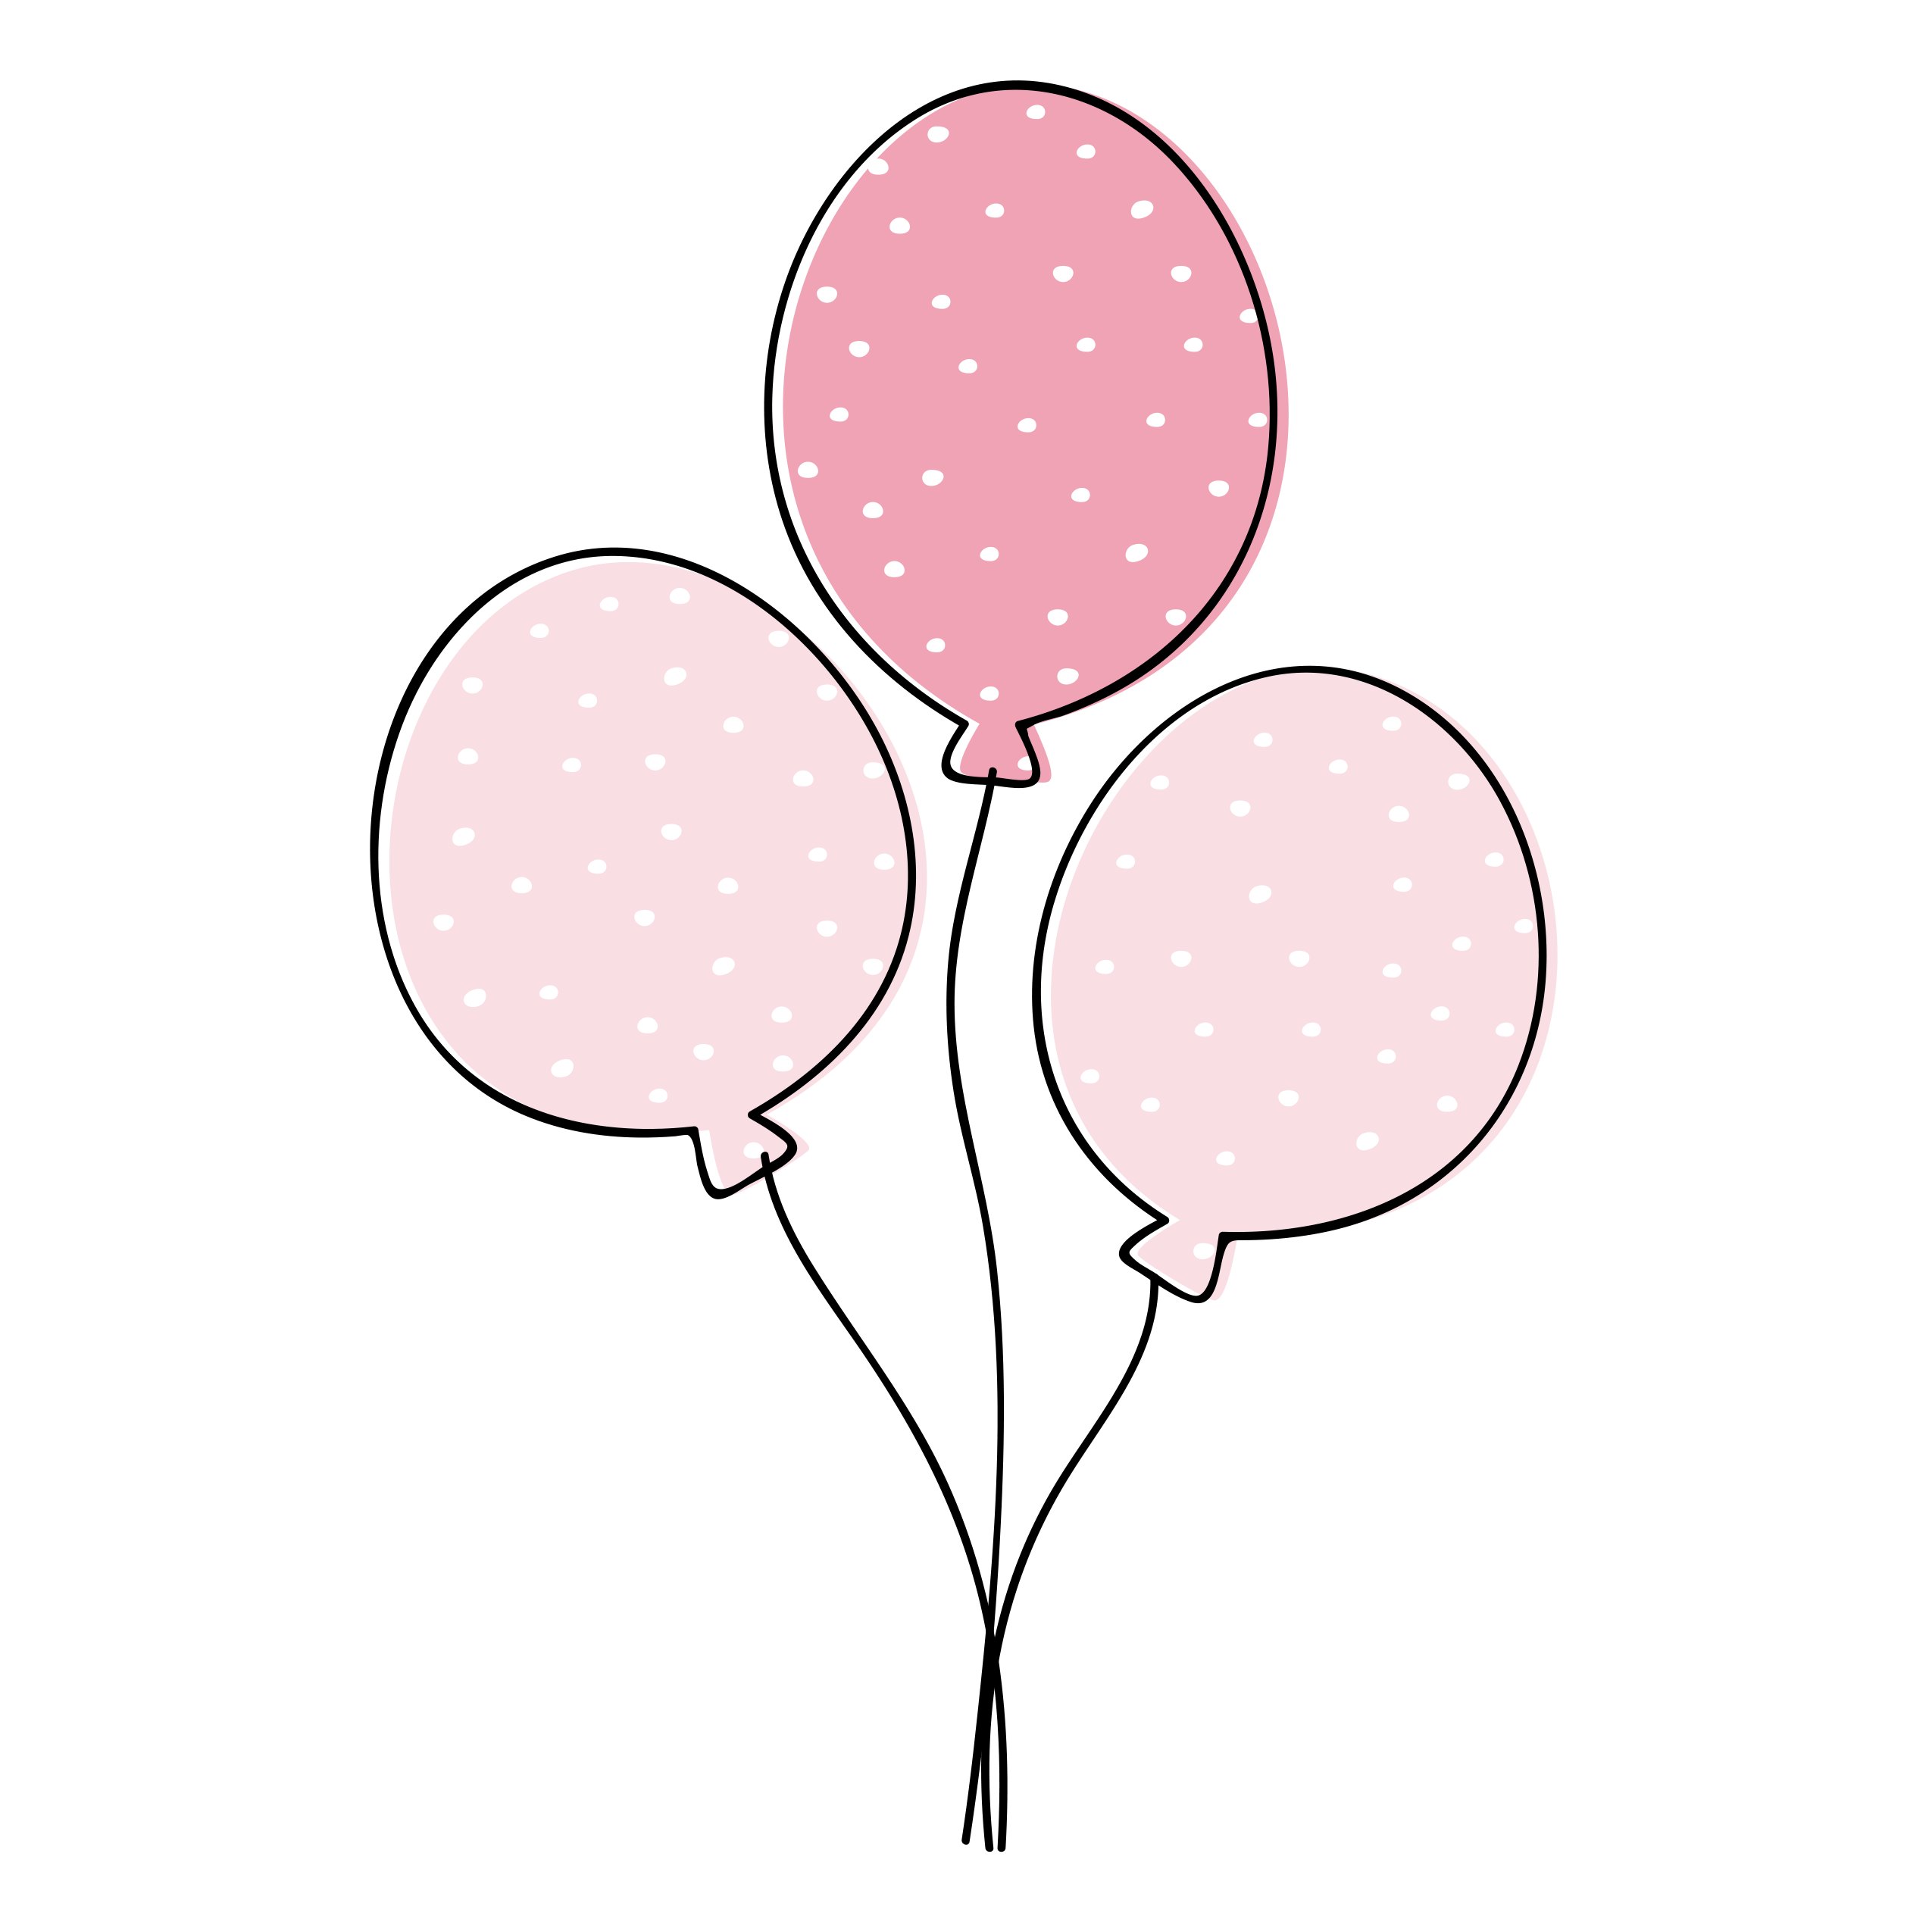 Baby shower balloon clipart free library FREE And Absolutely The Cutest Baby Shower Clip Art - Tulamama free library